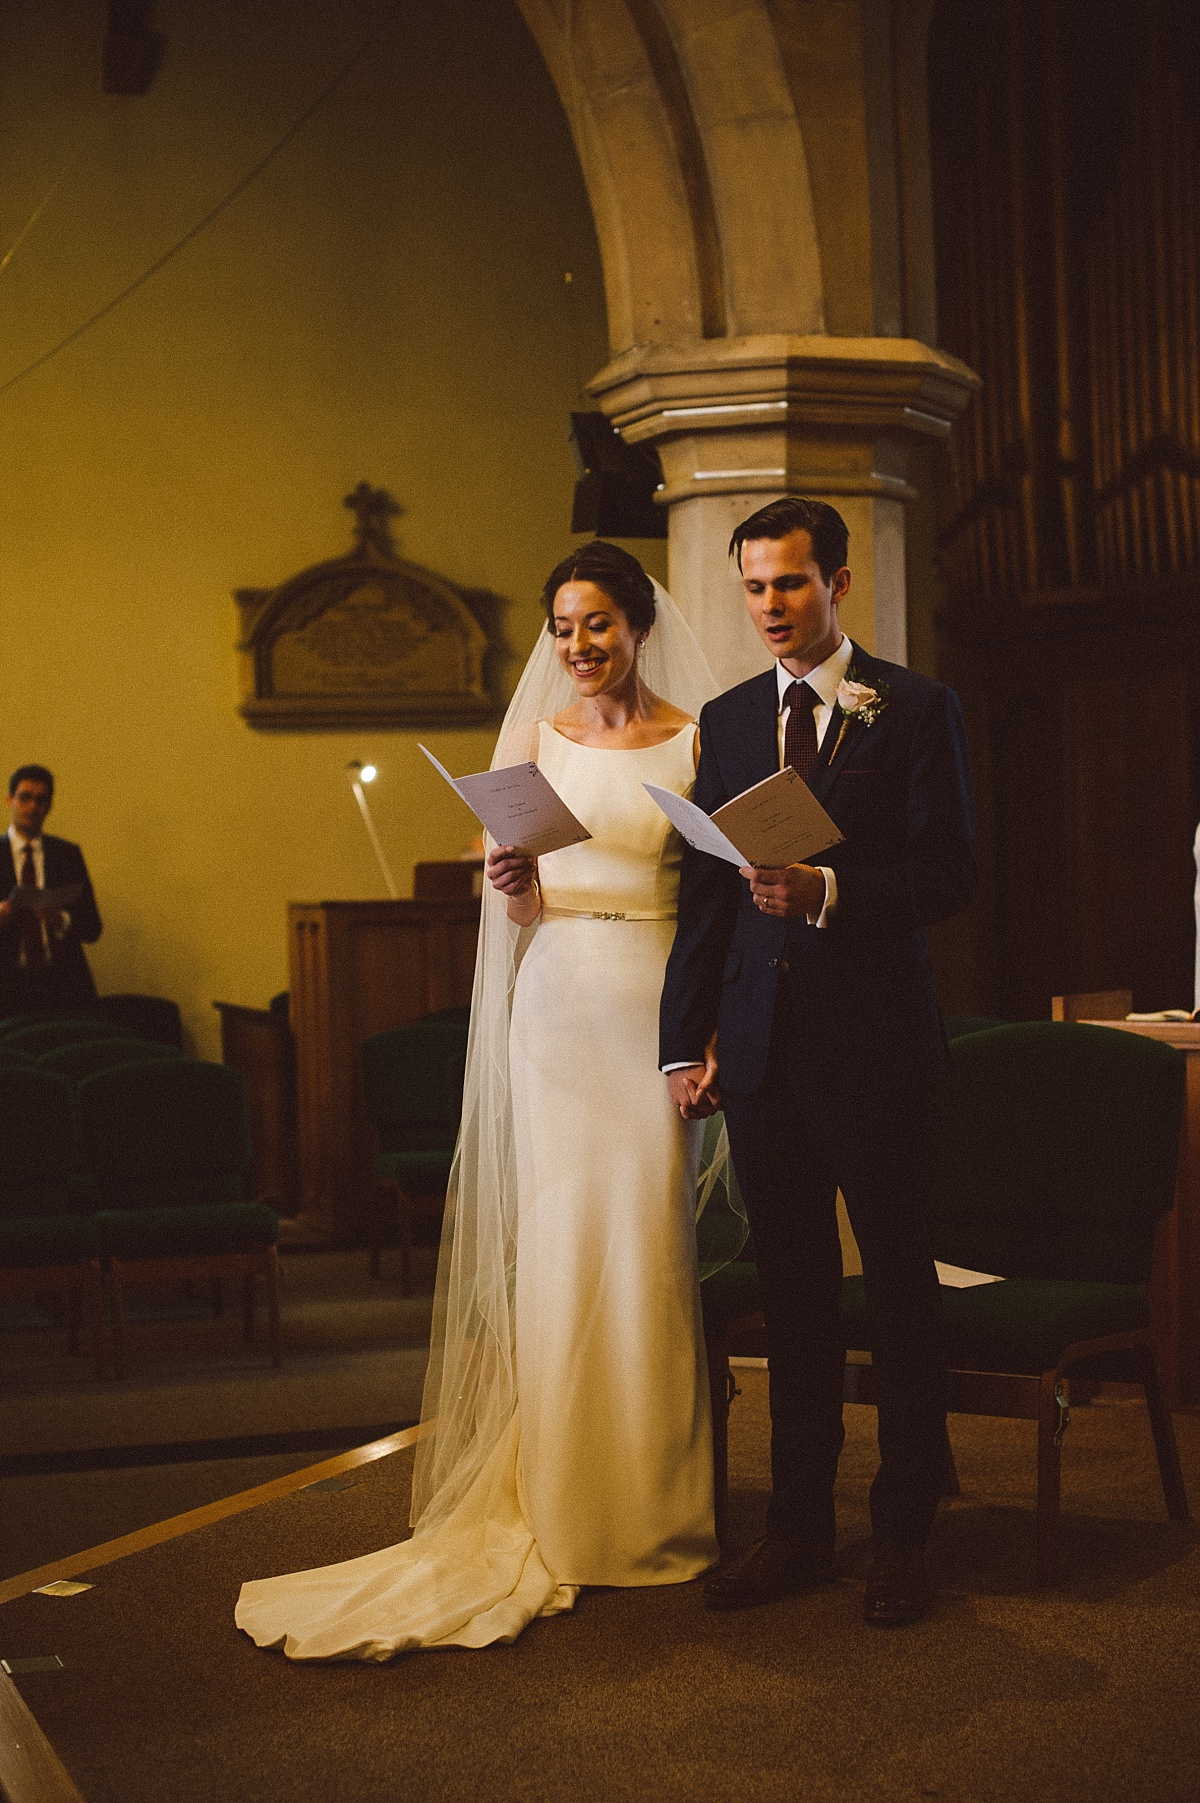 photo of wedding in church